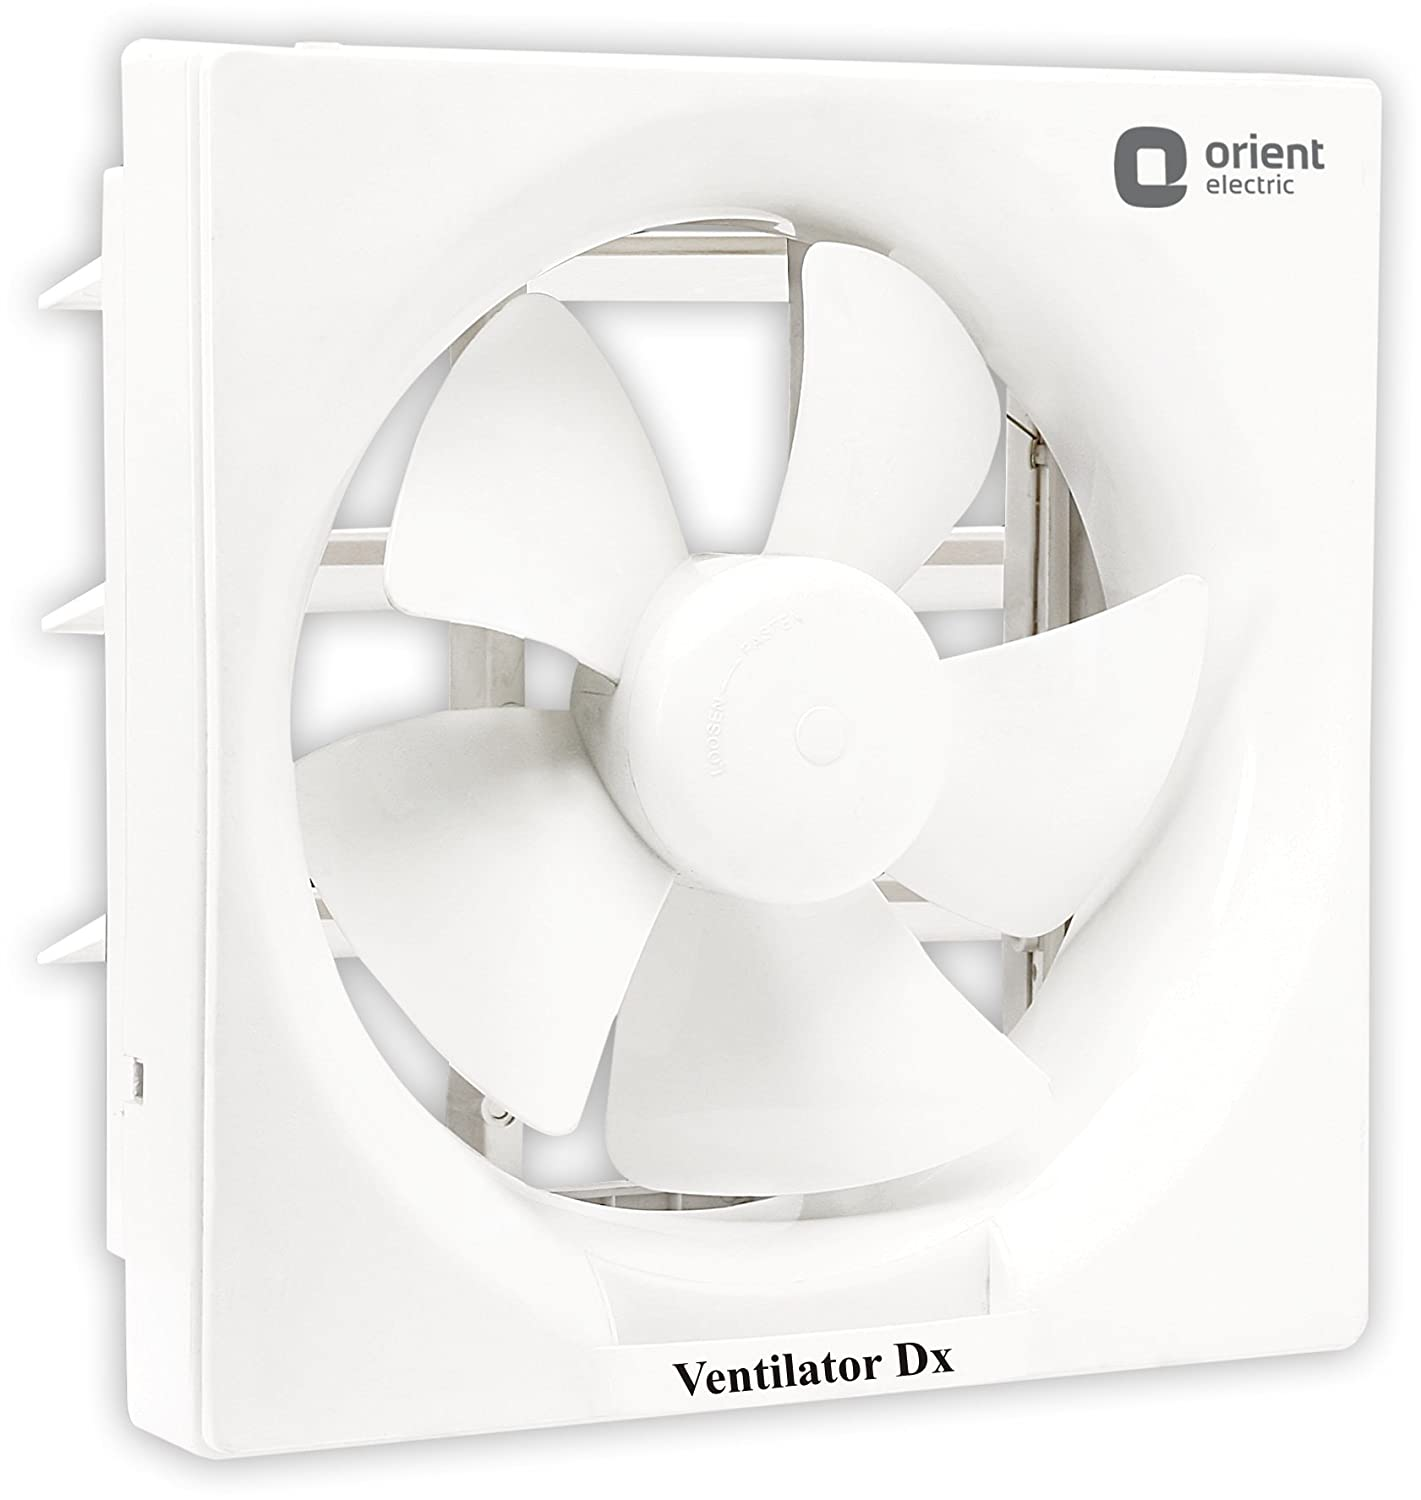 Orient Electric Ventilator Dx 250mm Exhaust Fan White House Wiring Diagram Home Kitchen